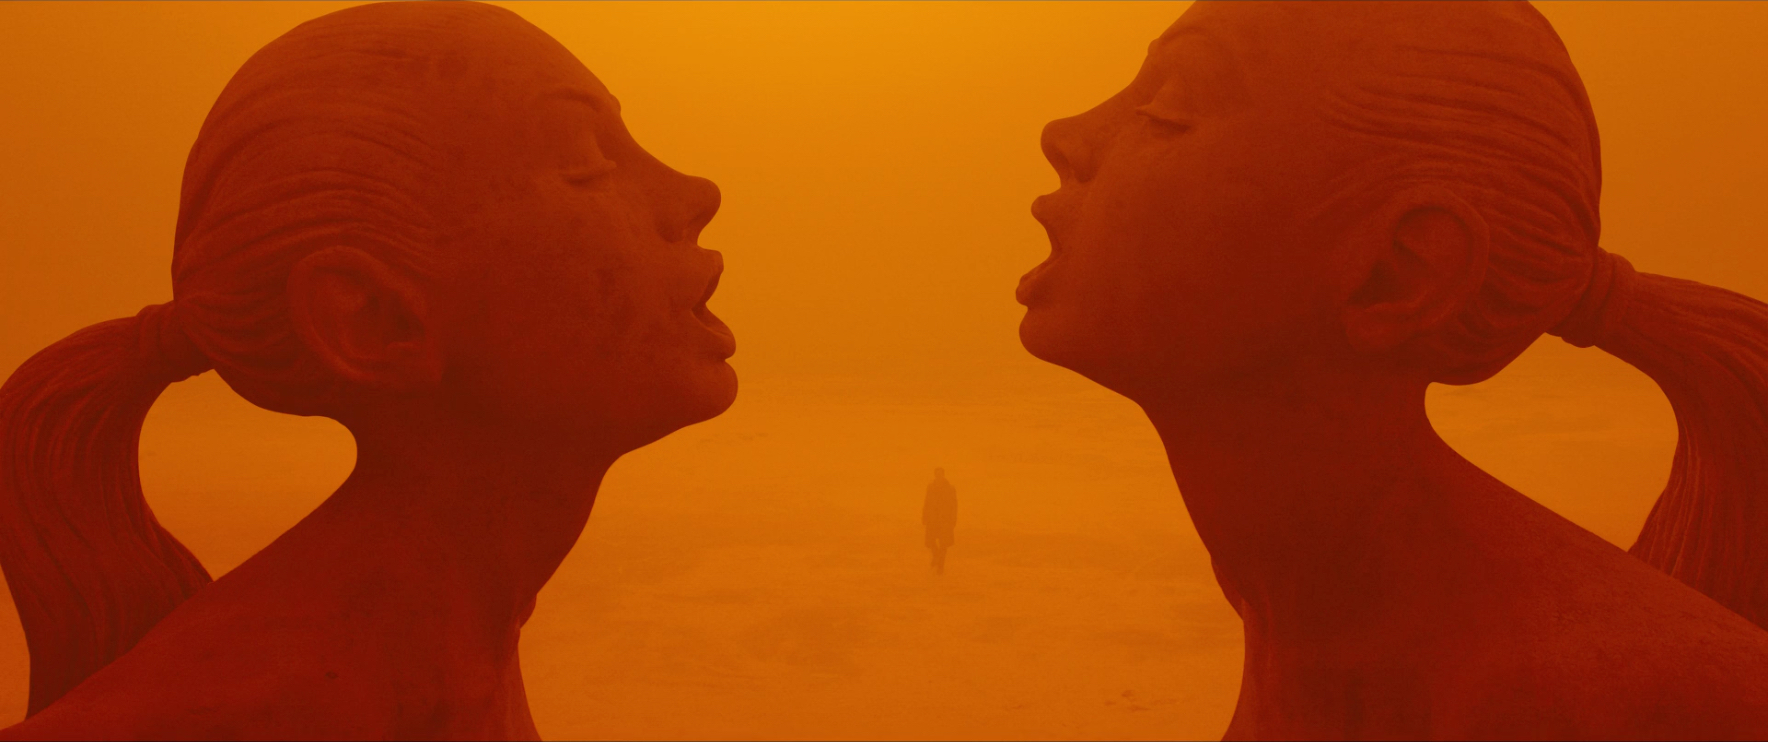 Blade Runner 2049: Statues of two women across from each other leaning in about to kiss